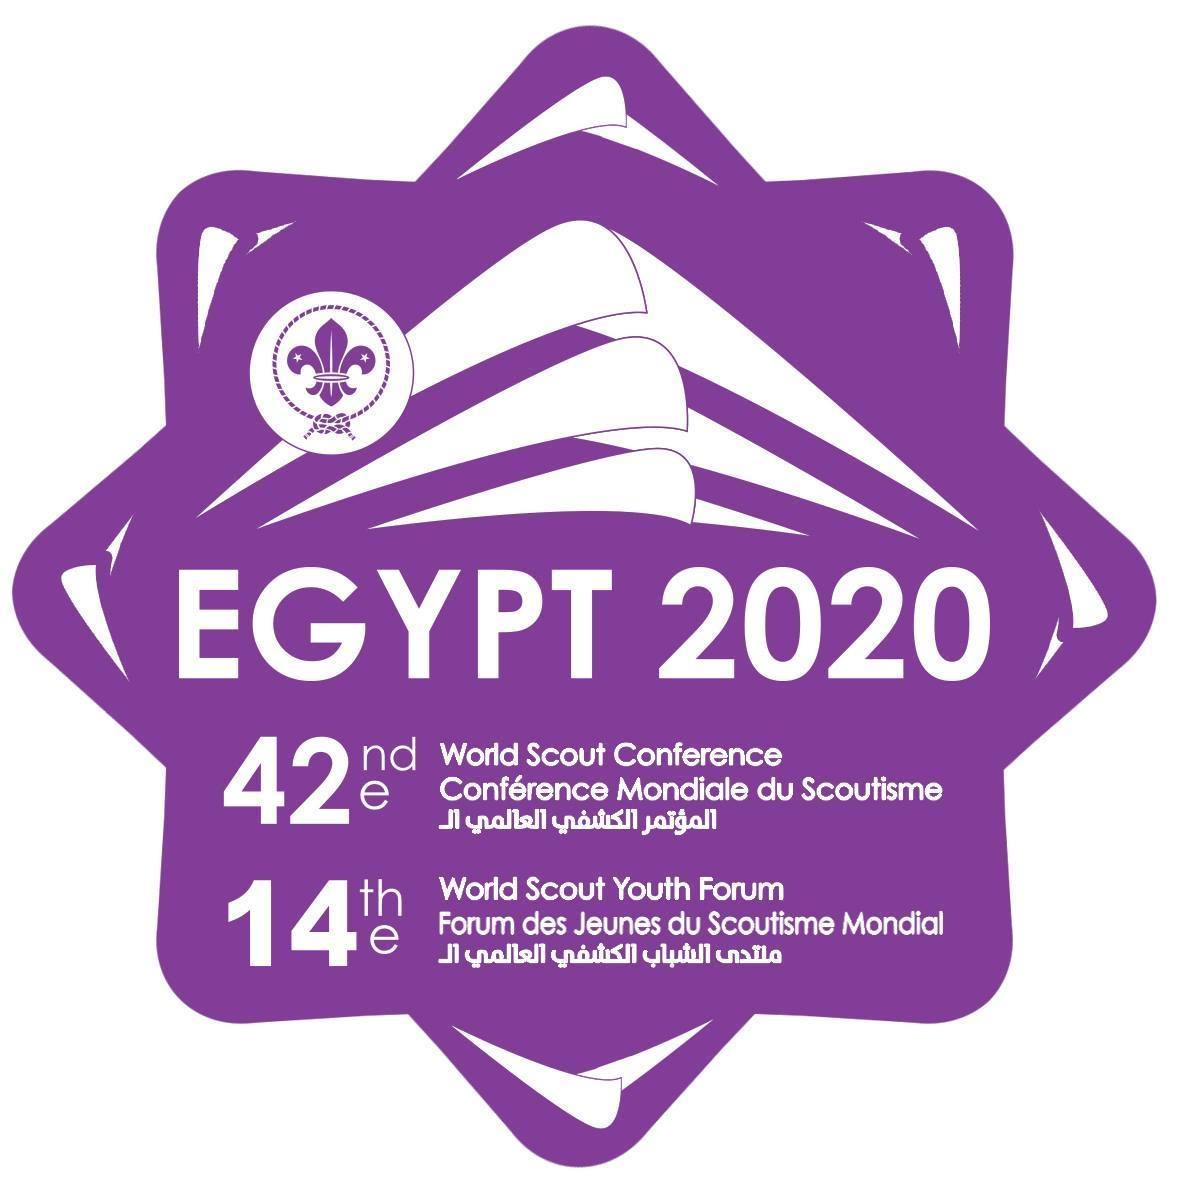 14th World Scout Youth Forum